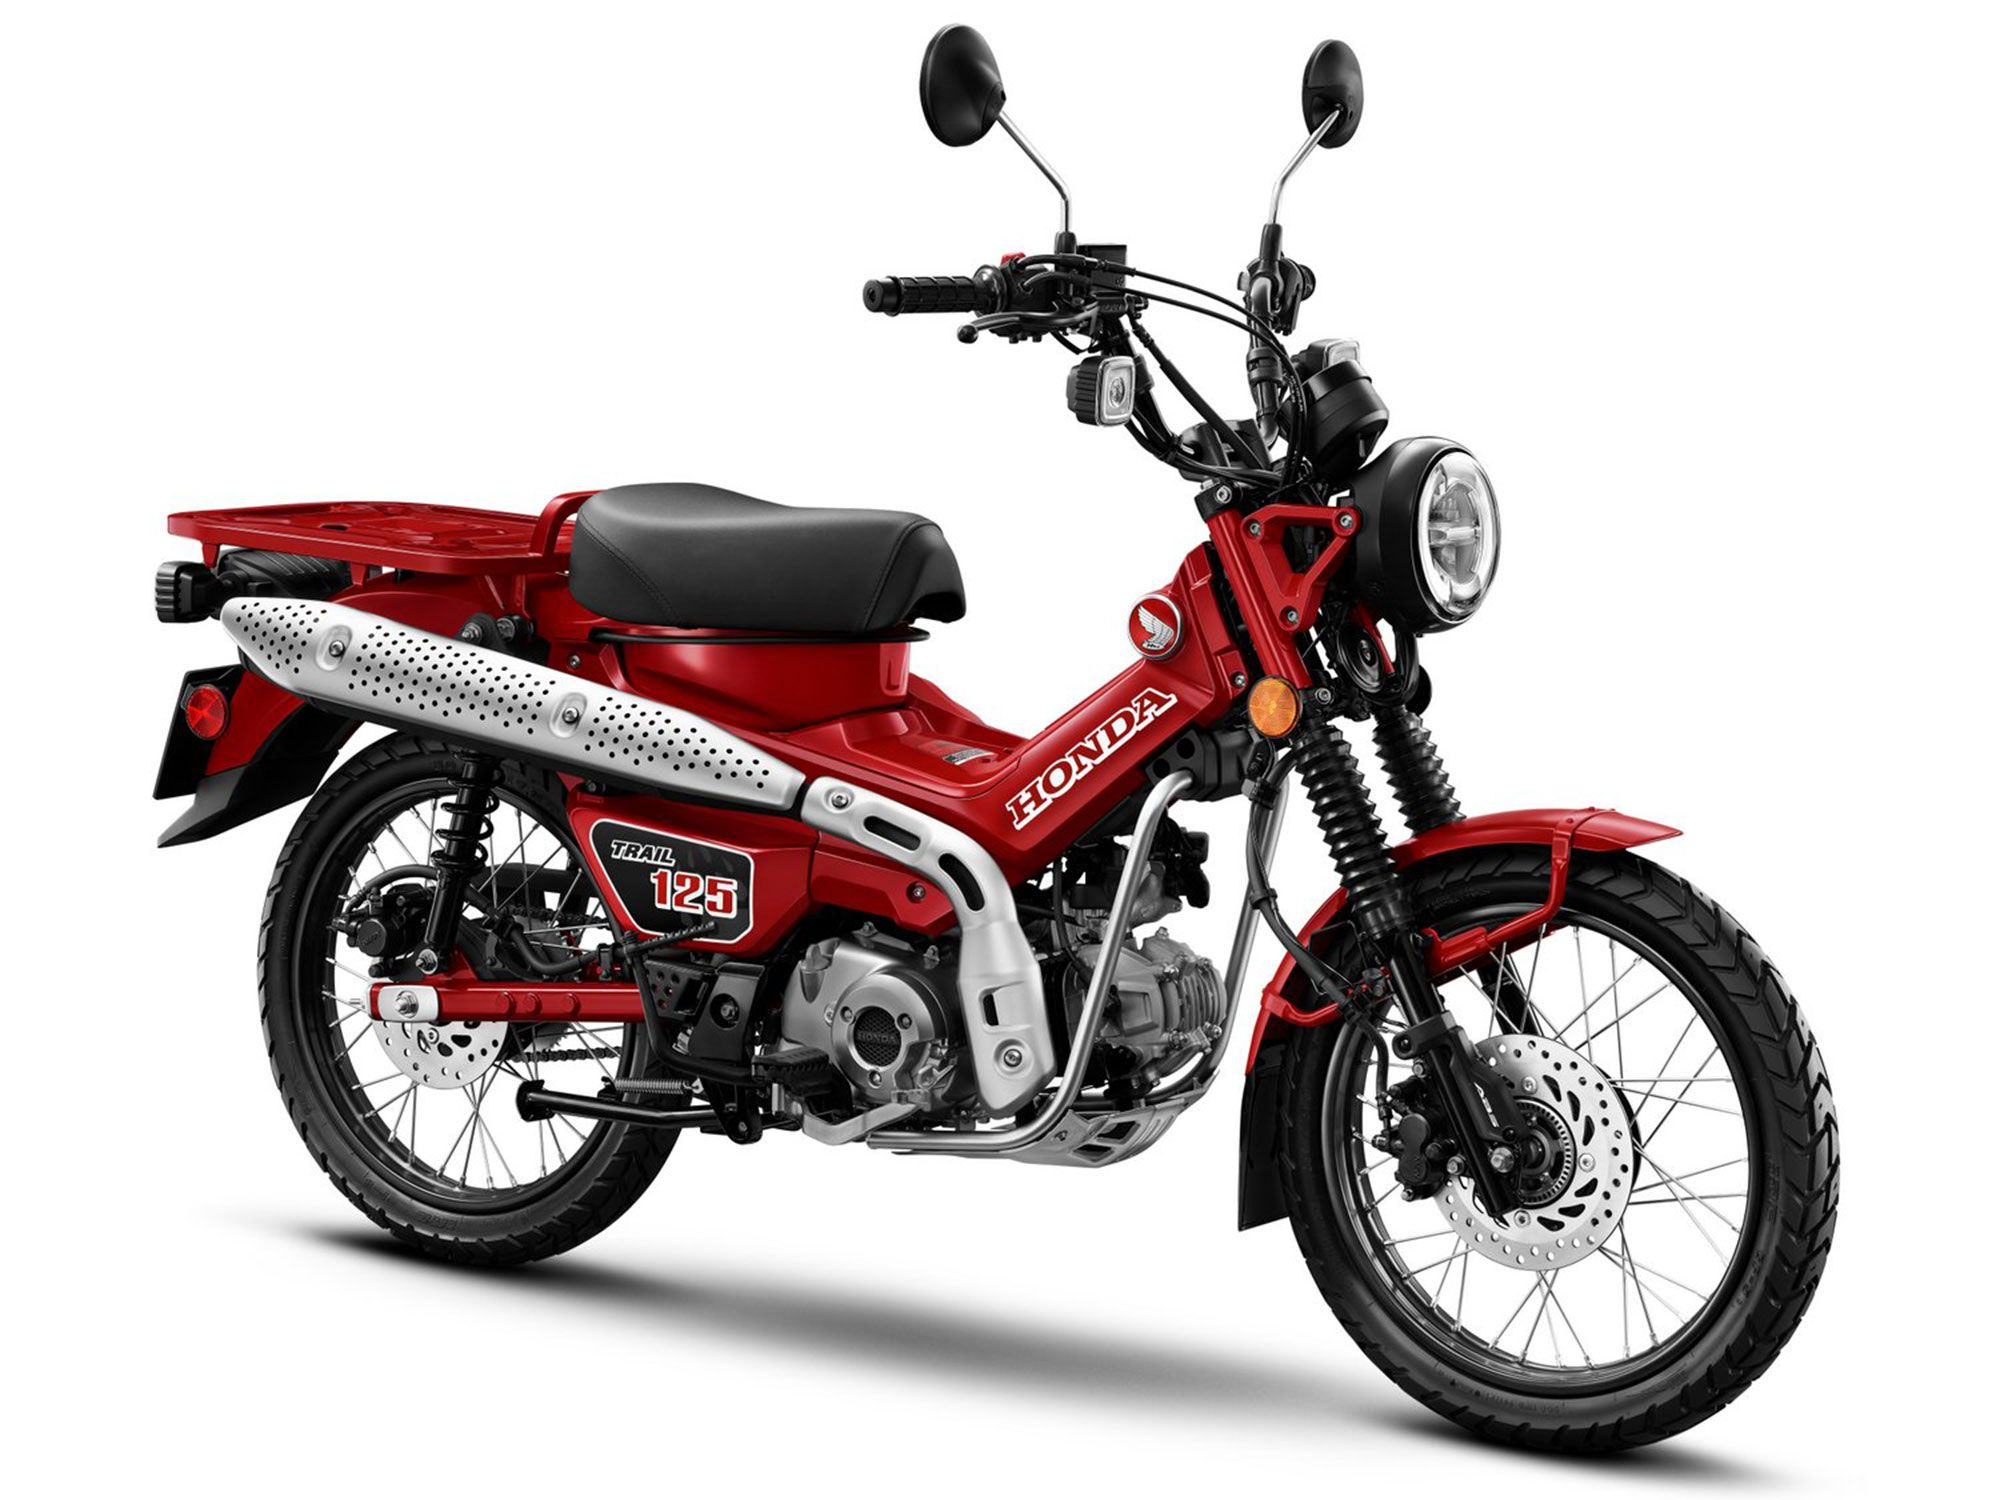 Honda's CT125 will be coming to the US, but will be called the Trail 125.